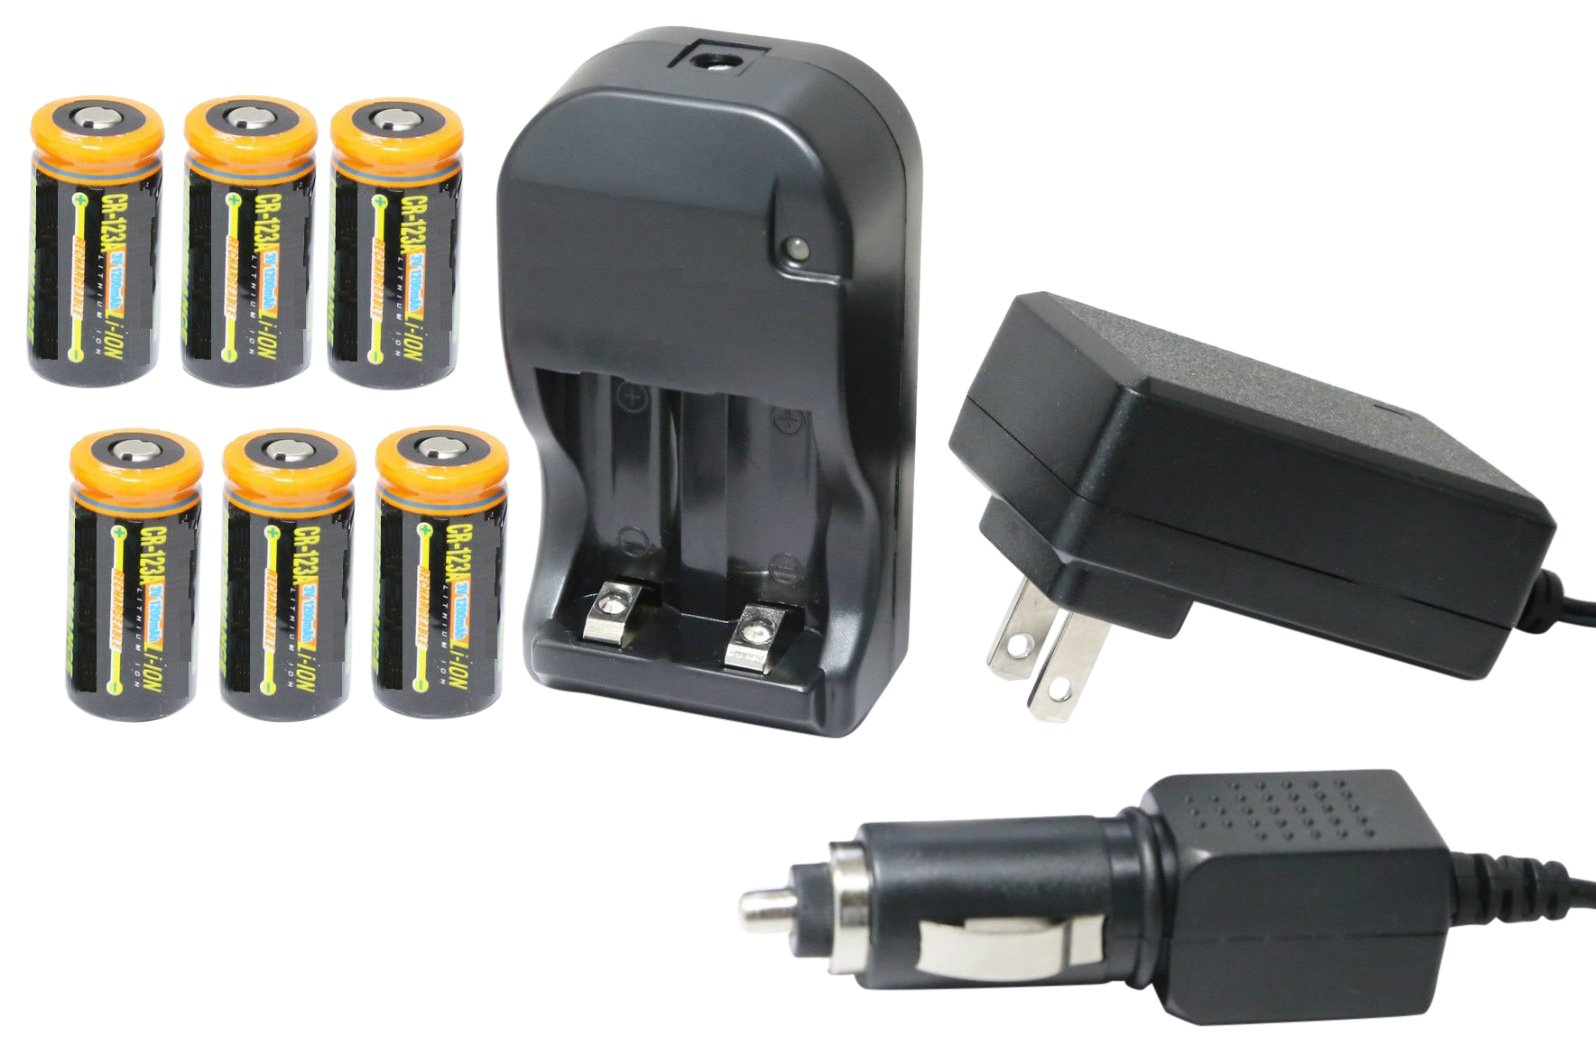 Ultimate Arms Gear UAG-18360 Tactical CR123A 3V Lithium Li-Ion Rechargeable Batteries Battery Charger Kit and 12V Car Lighter Plug Adapter 4 AIM Flashlight, 110/220V, 1200 mAh, 6 Piece